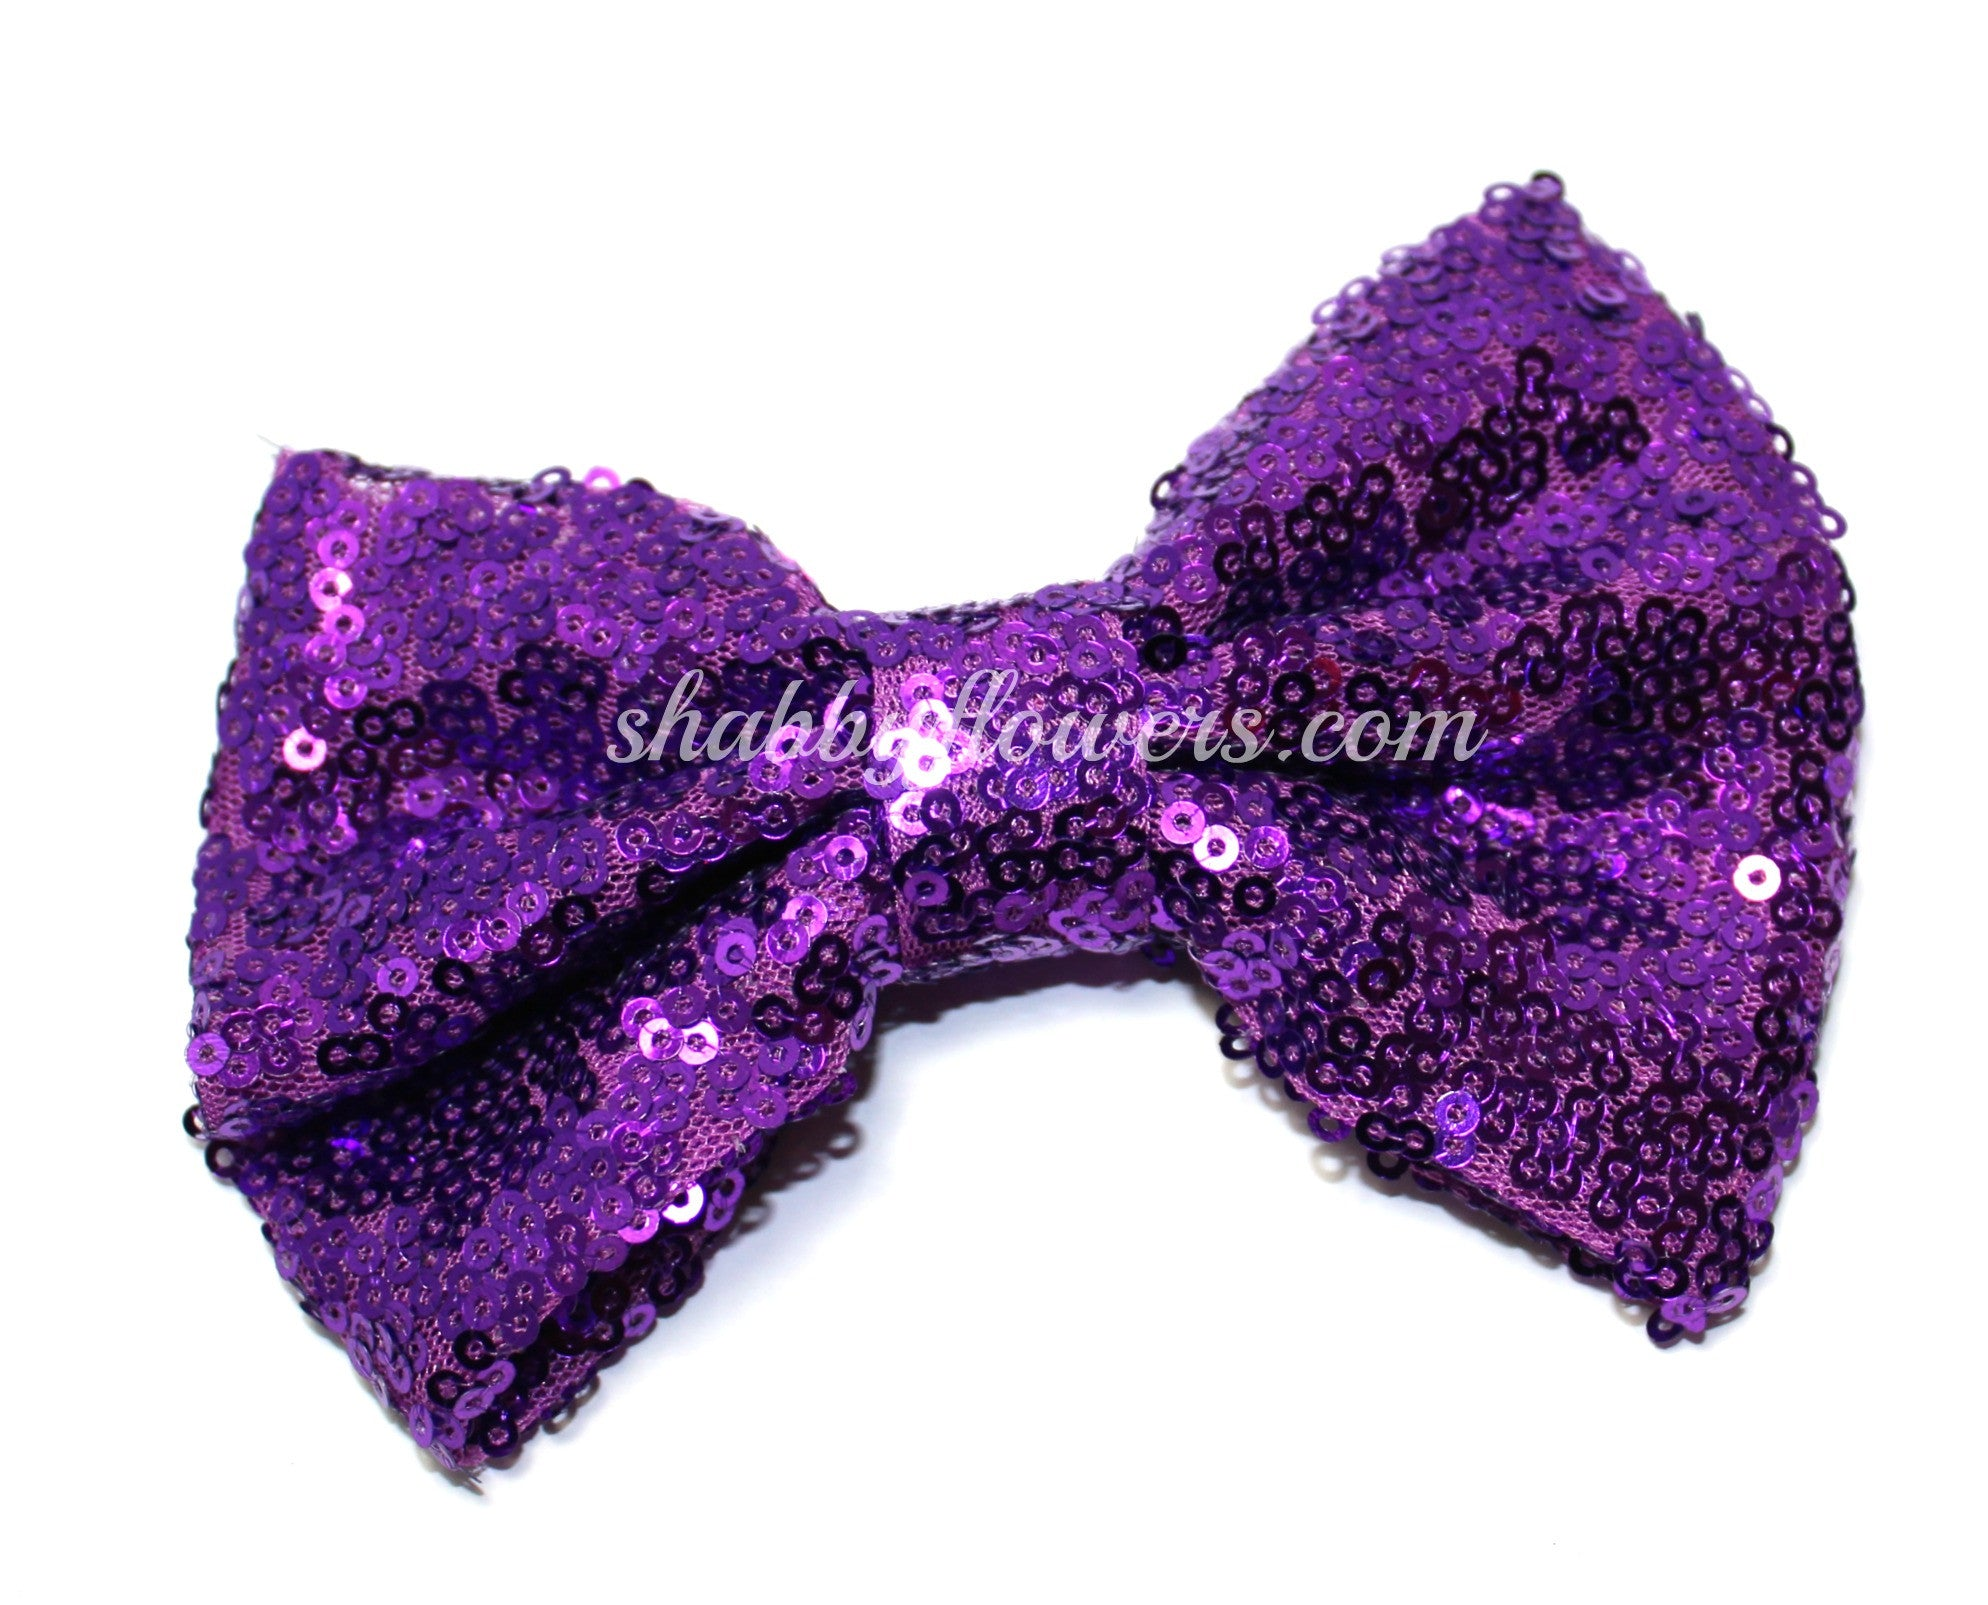 Medium Sequin Bow - Grape - shabbyflowers.com